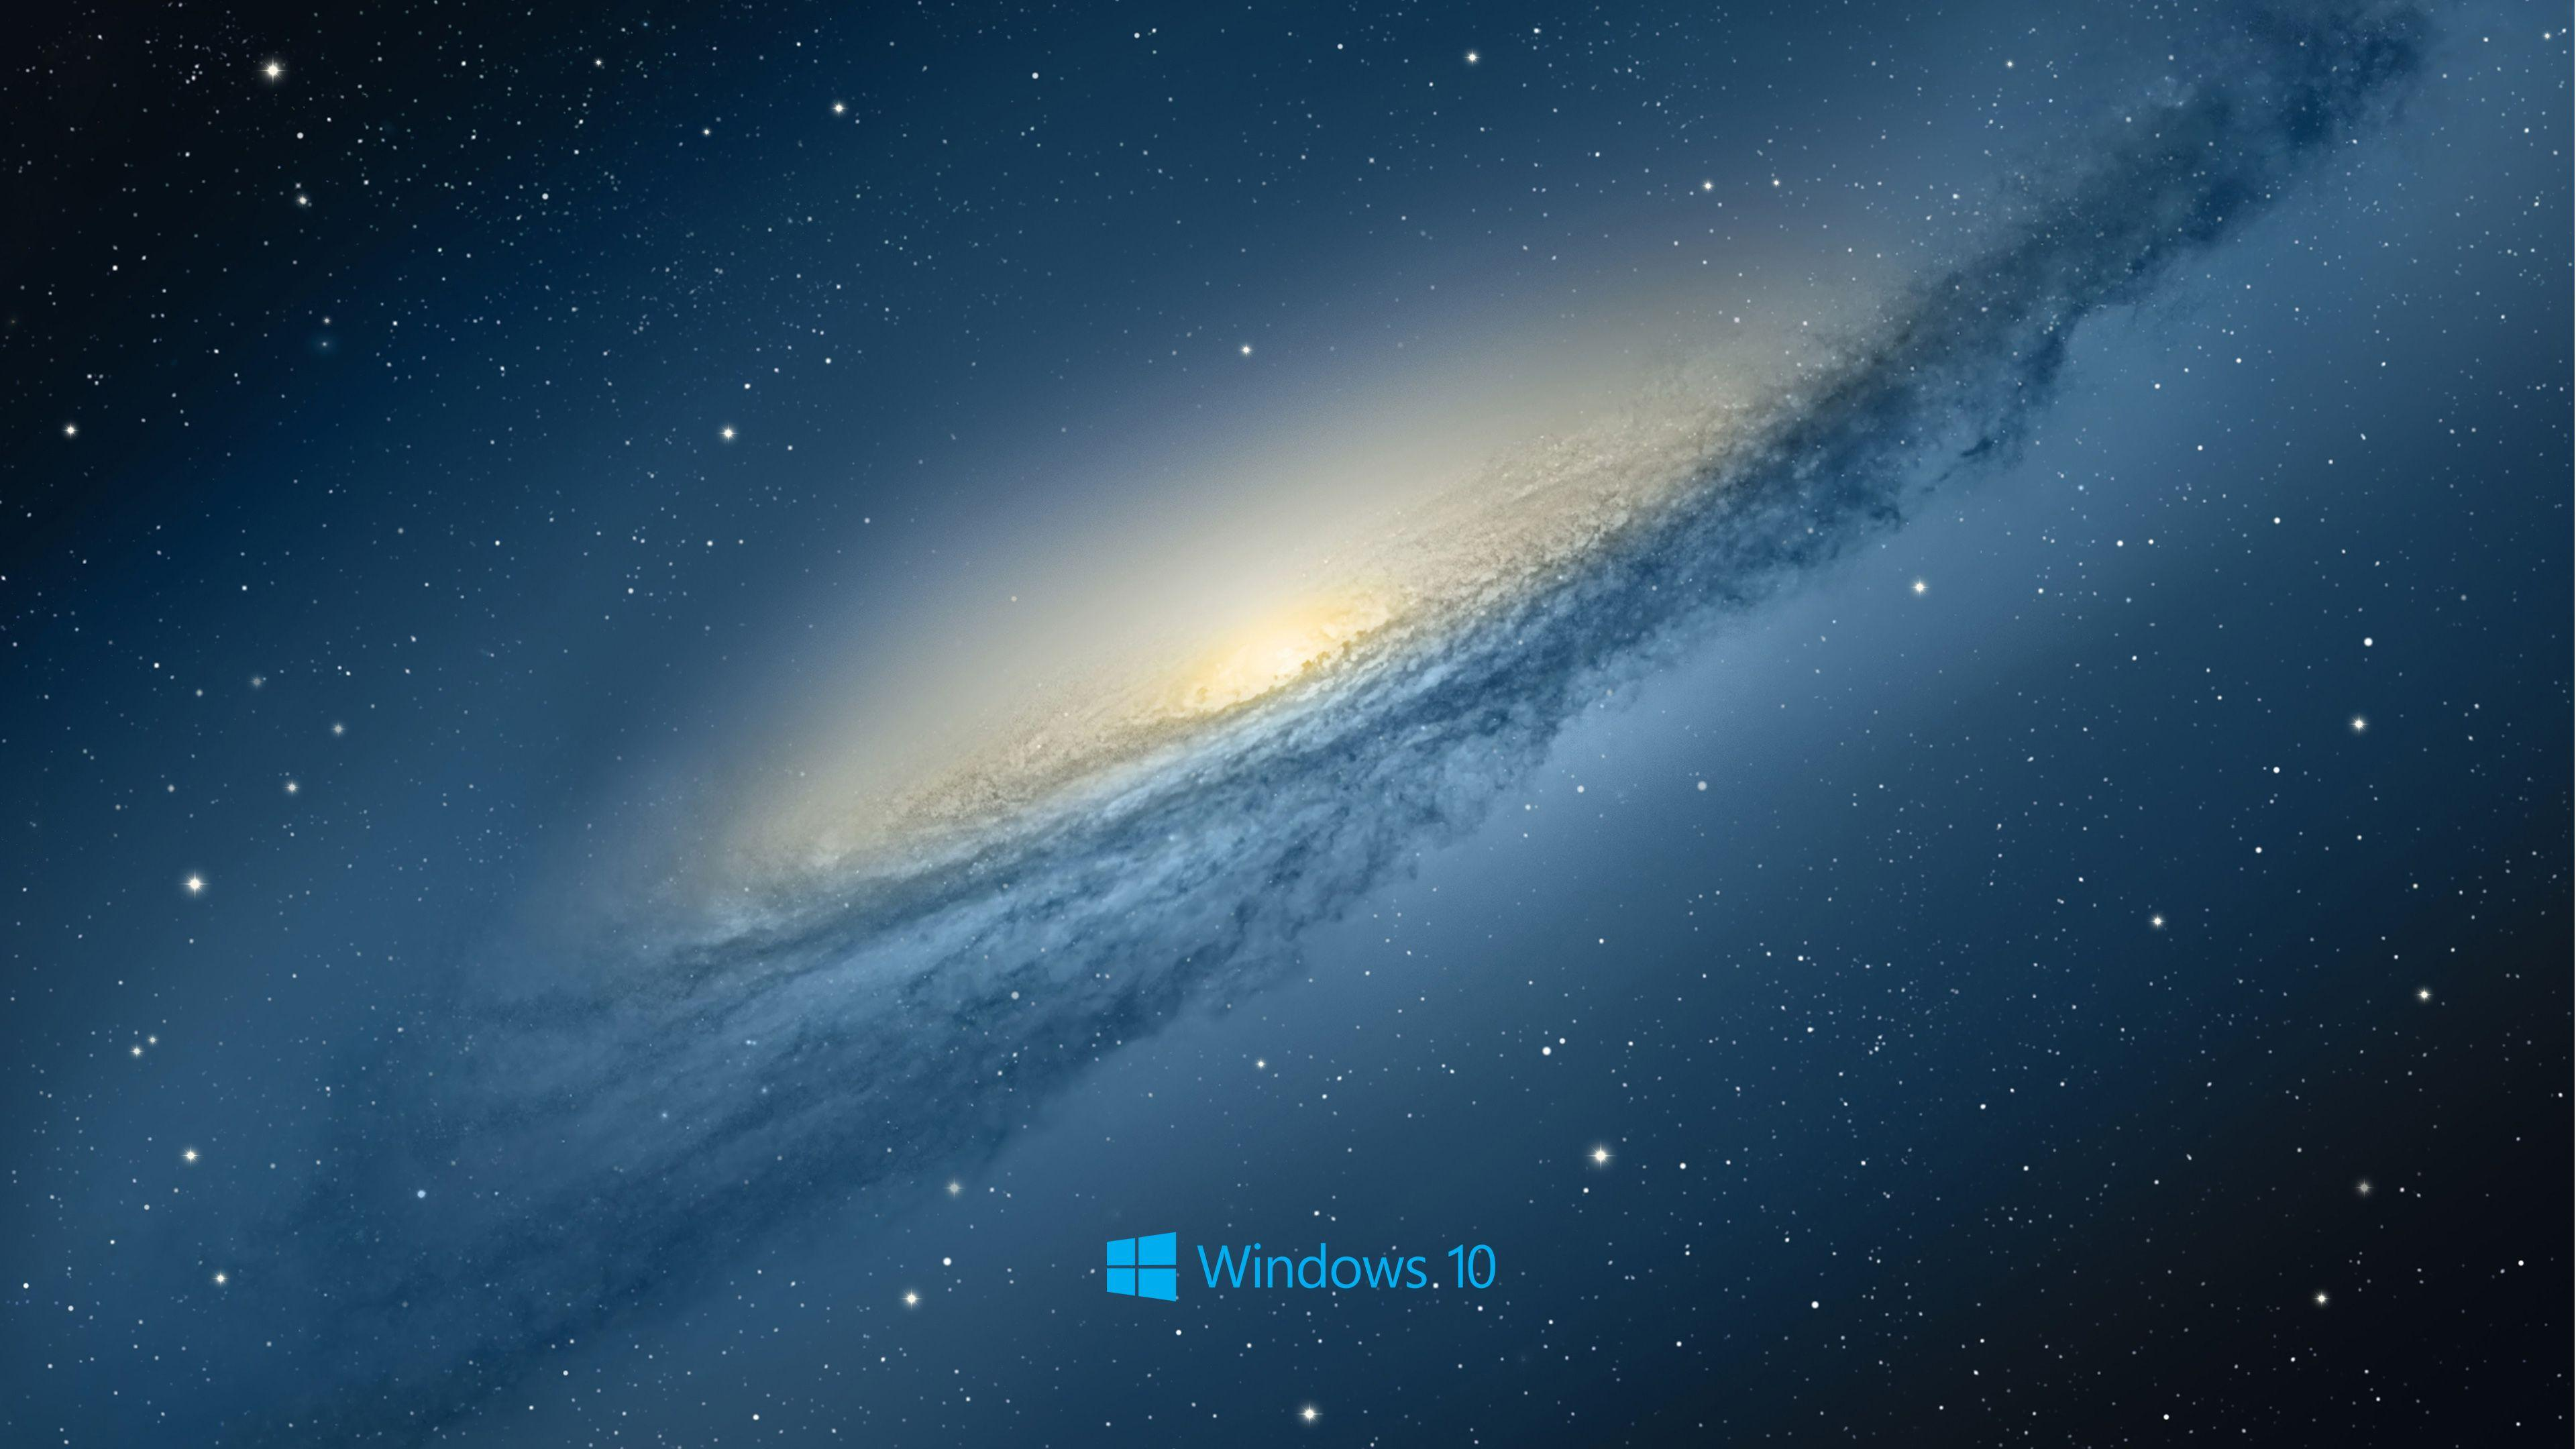 Windows 10 4k Wallpapers Wallpaper Cave